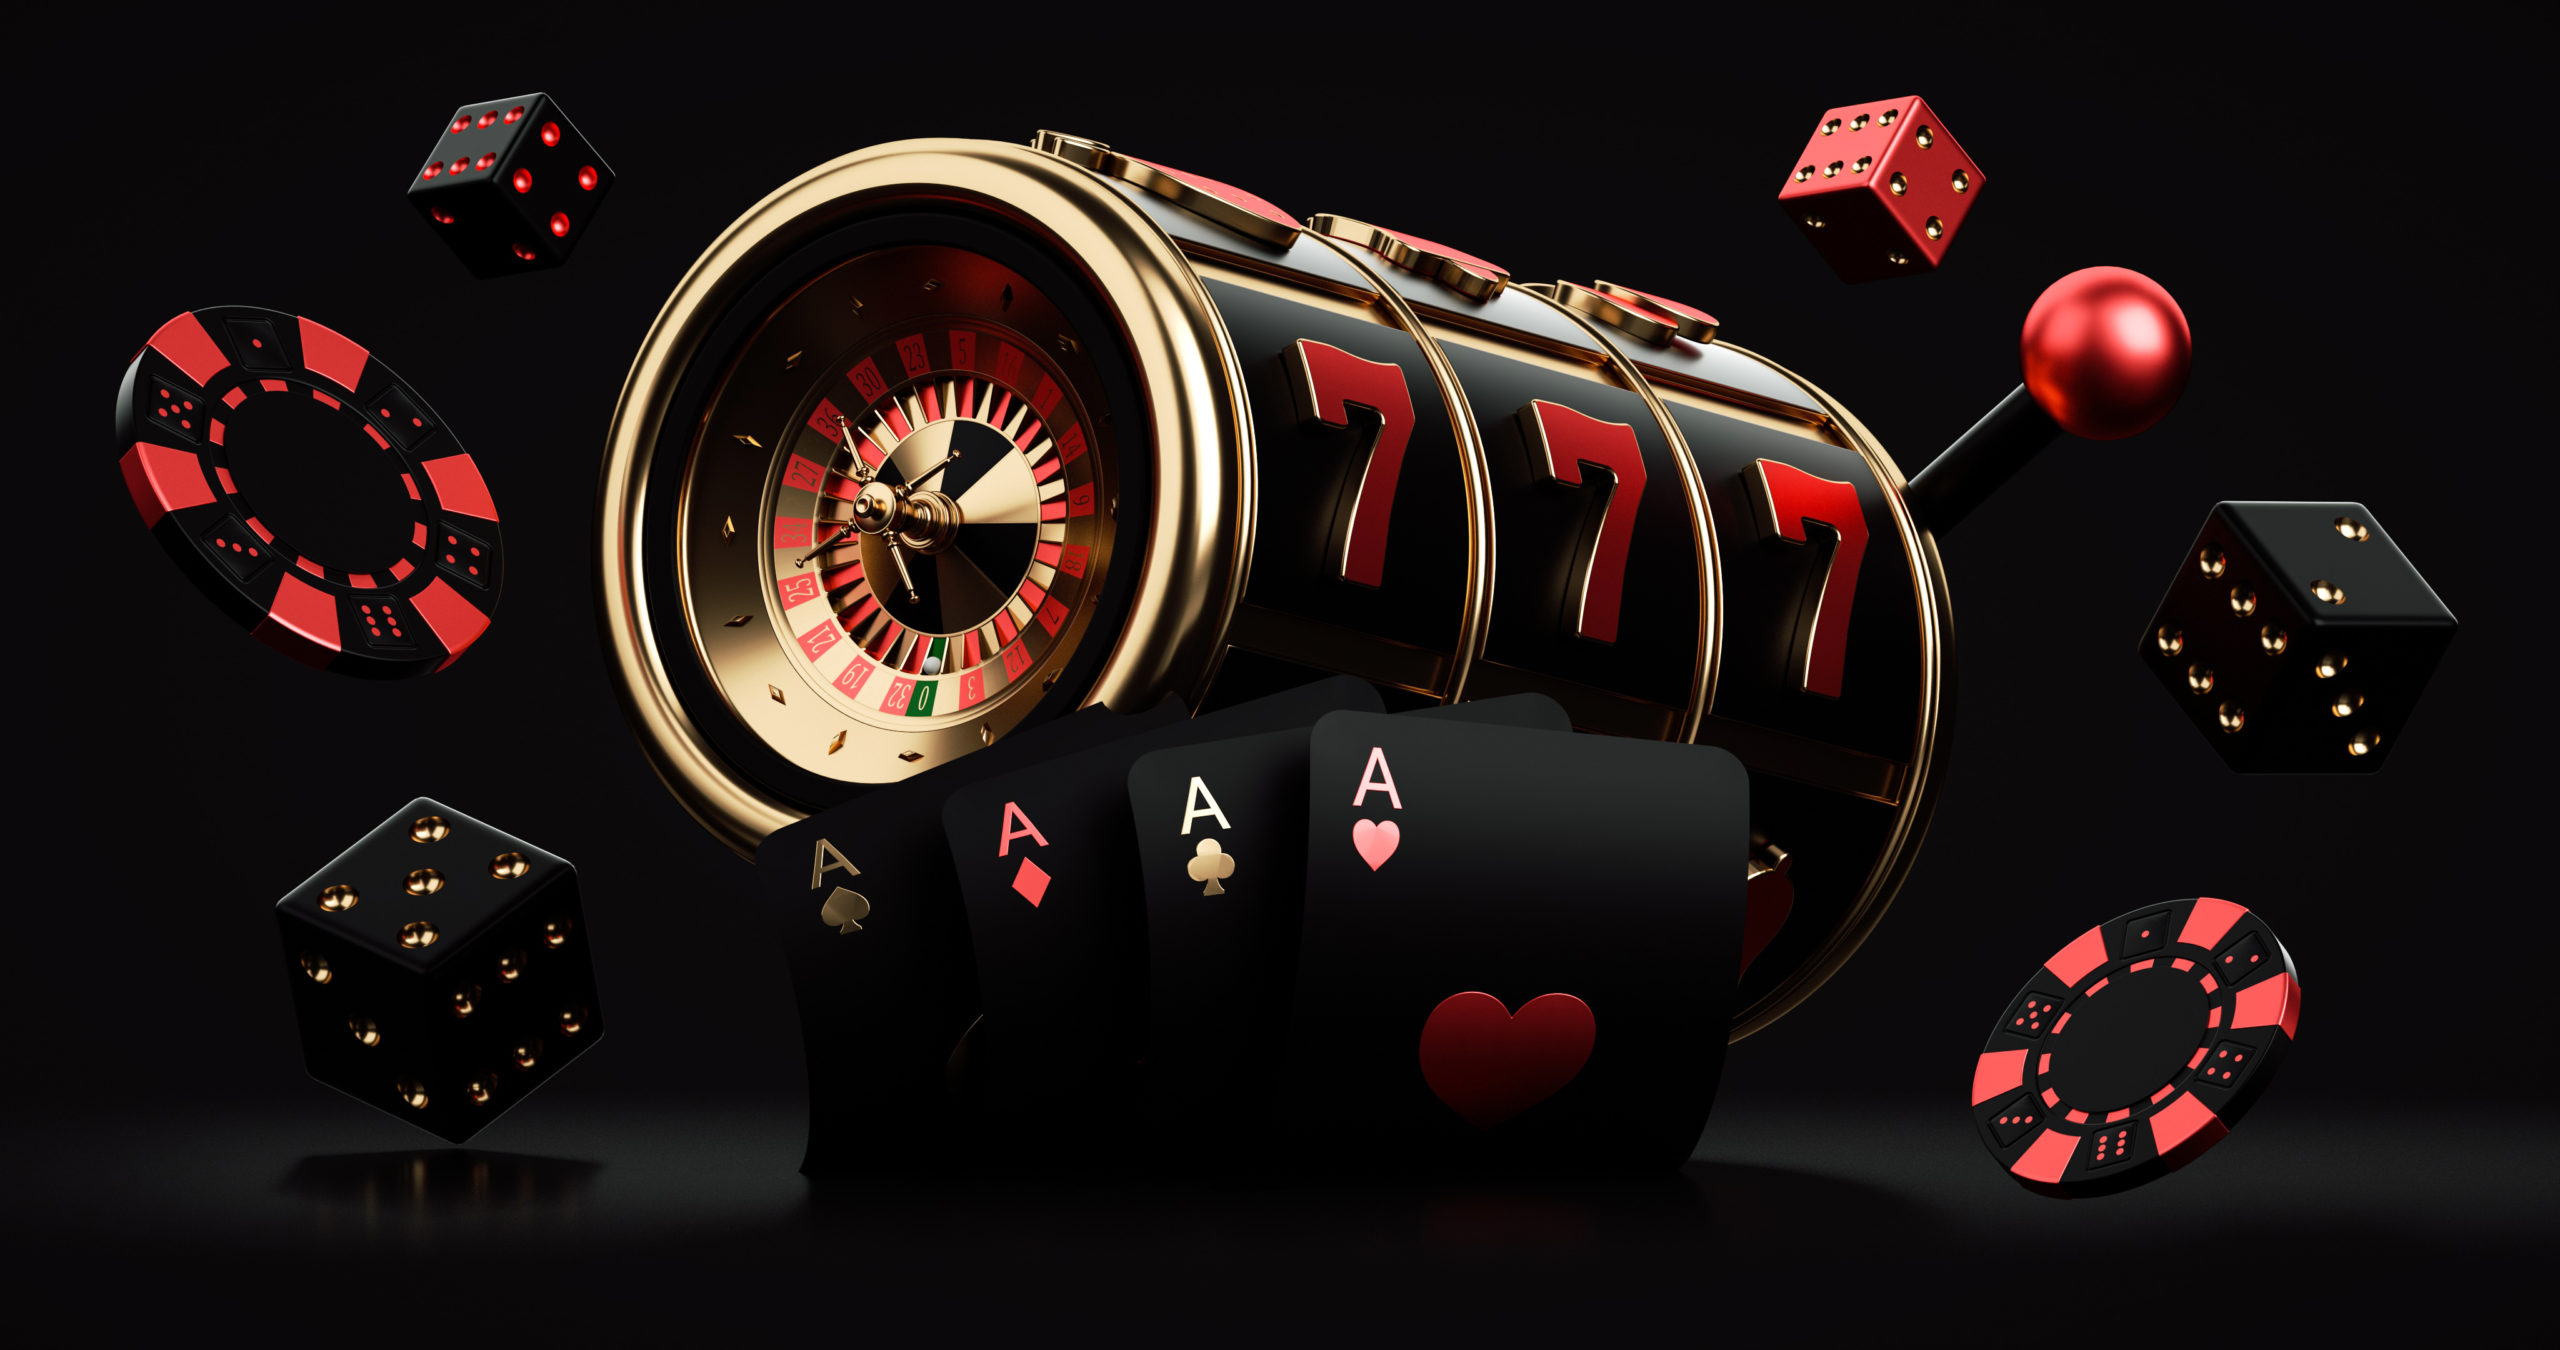 Black,Red,And,Golden,Slot,Machine,With,Roulette,Wheel,Inside,